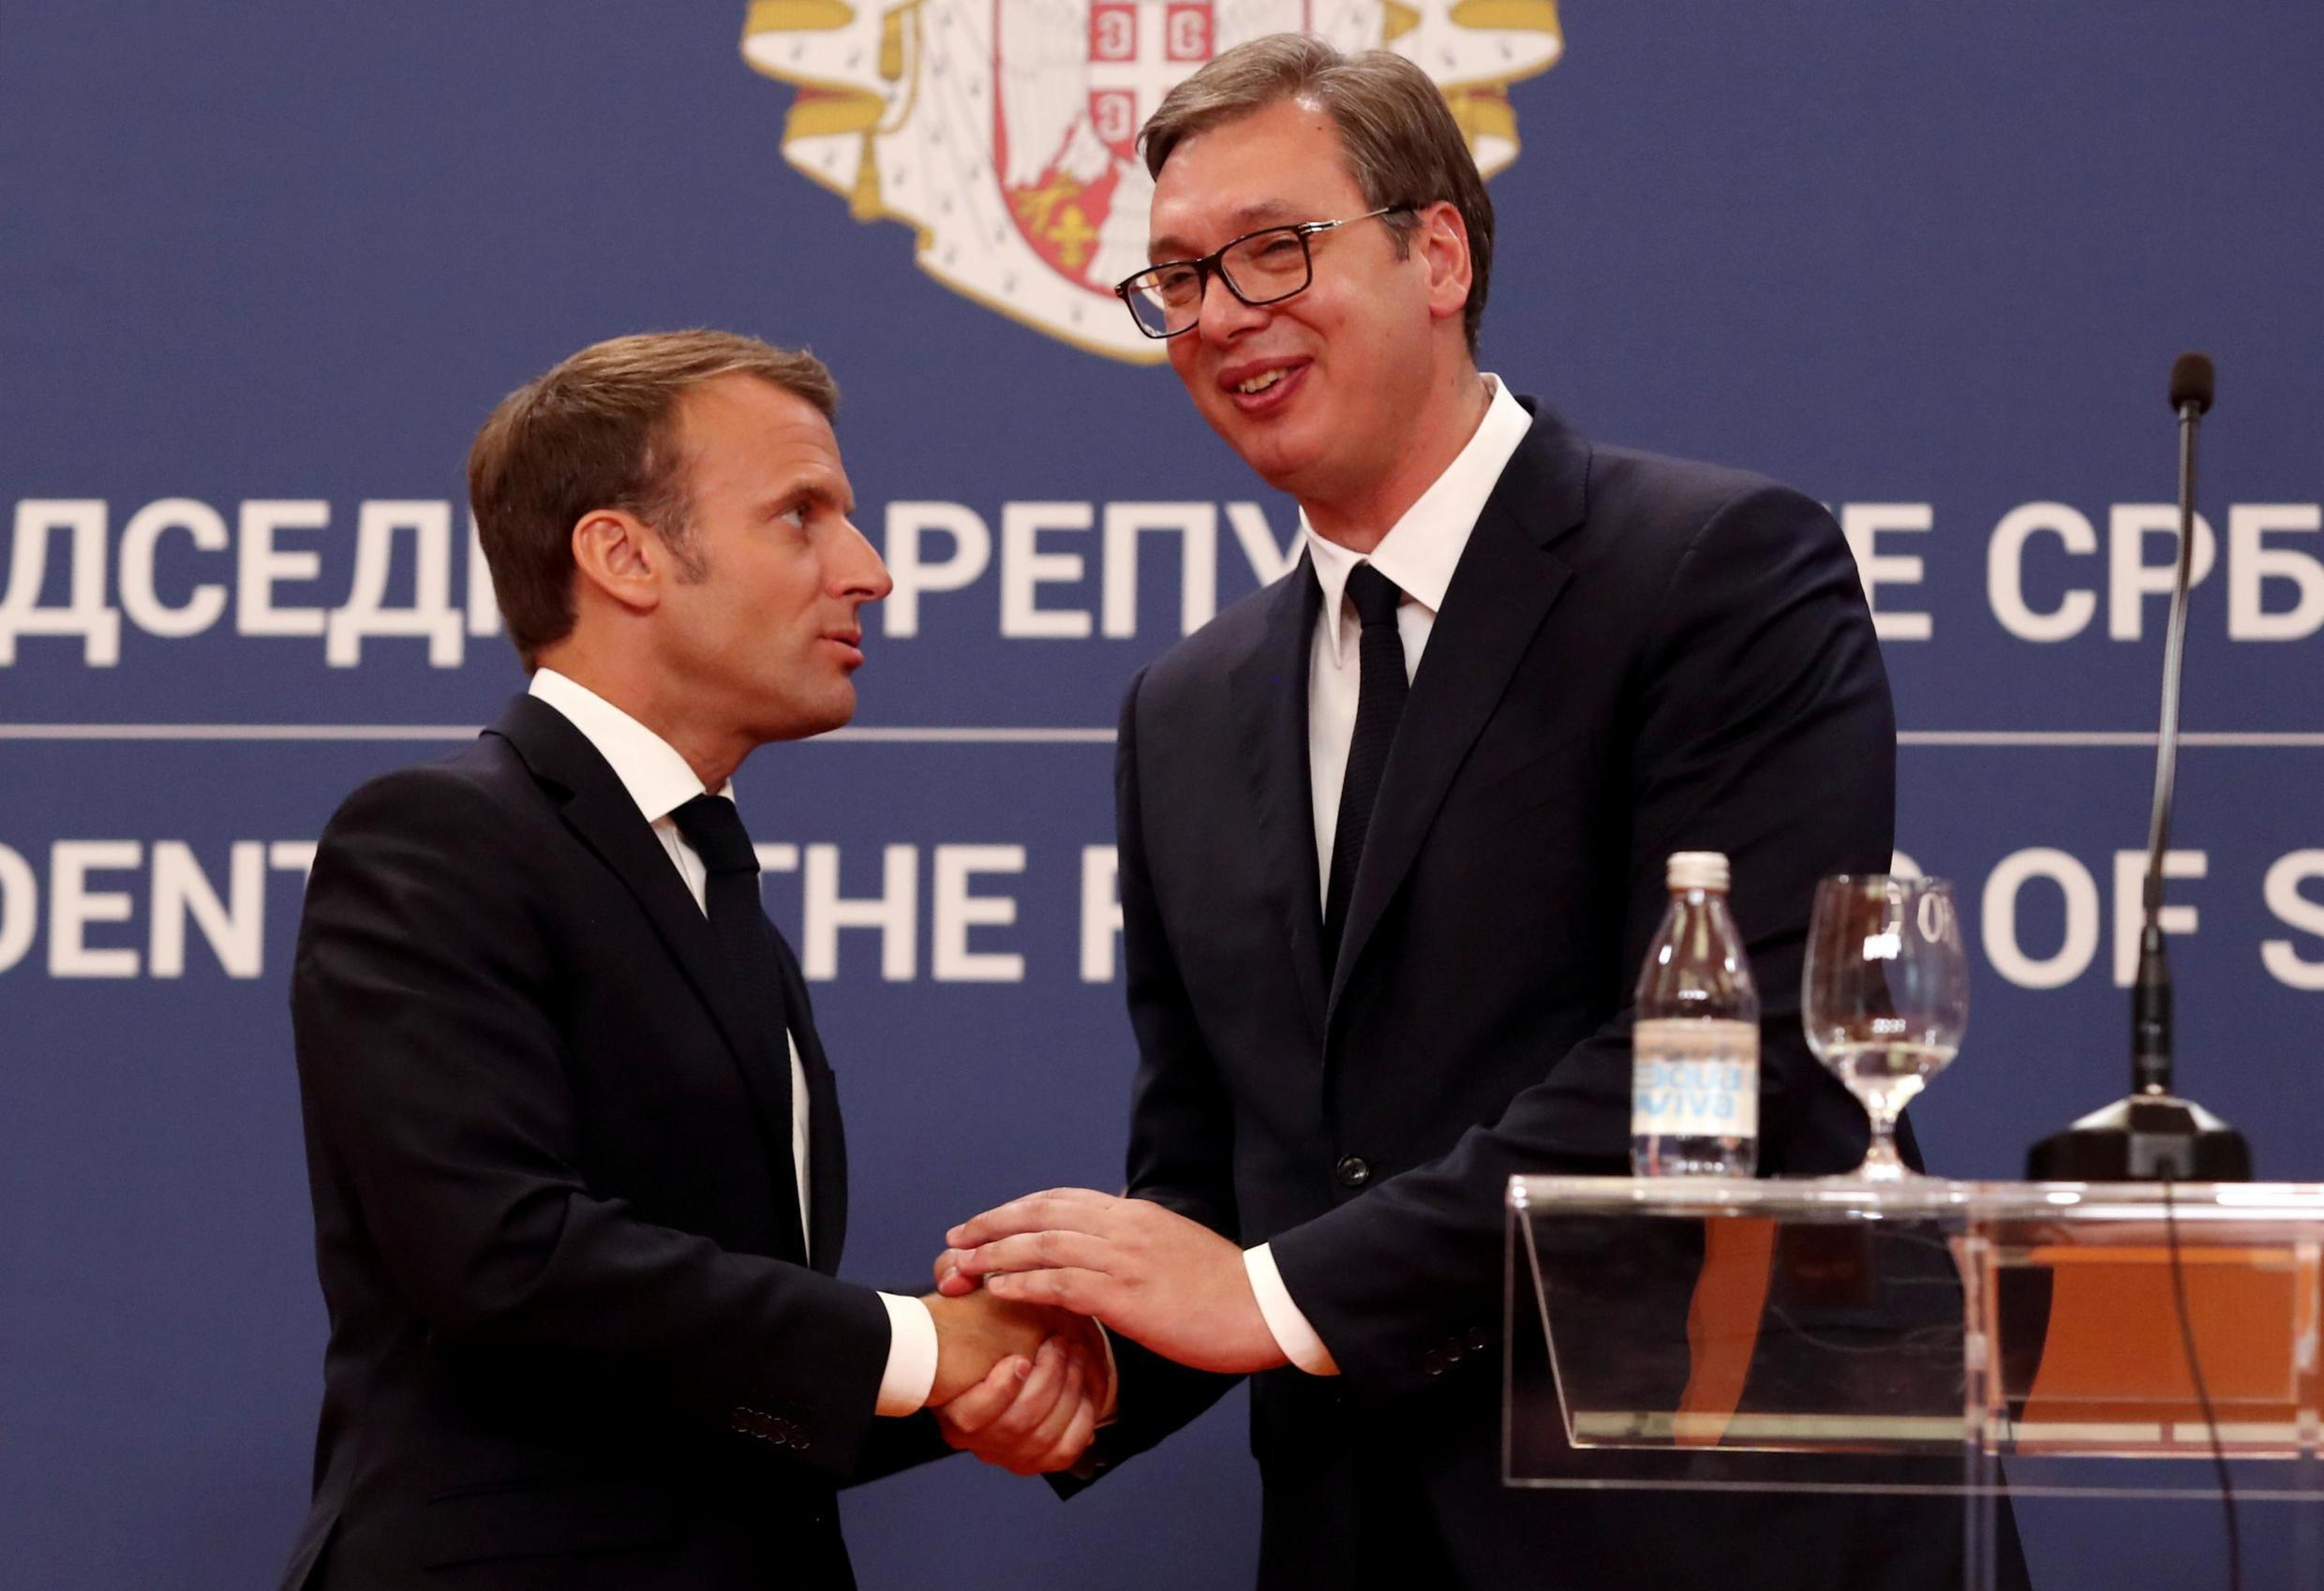 French President Emmanuel Macron and Serbian President Aleksandar Vucic shake hands after a joint news conference, Serbia, July 15, 2019.